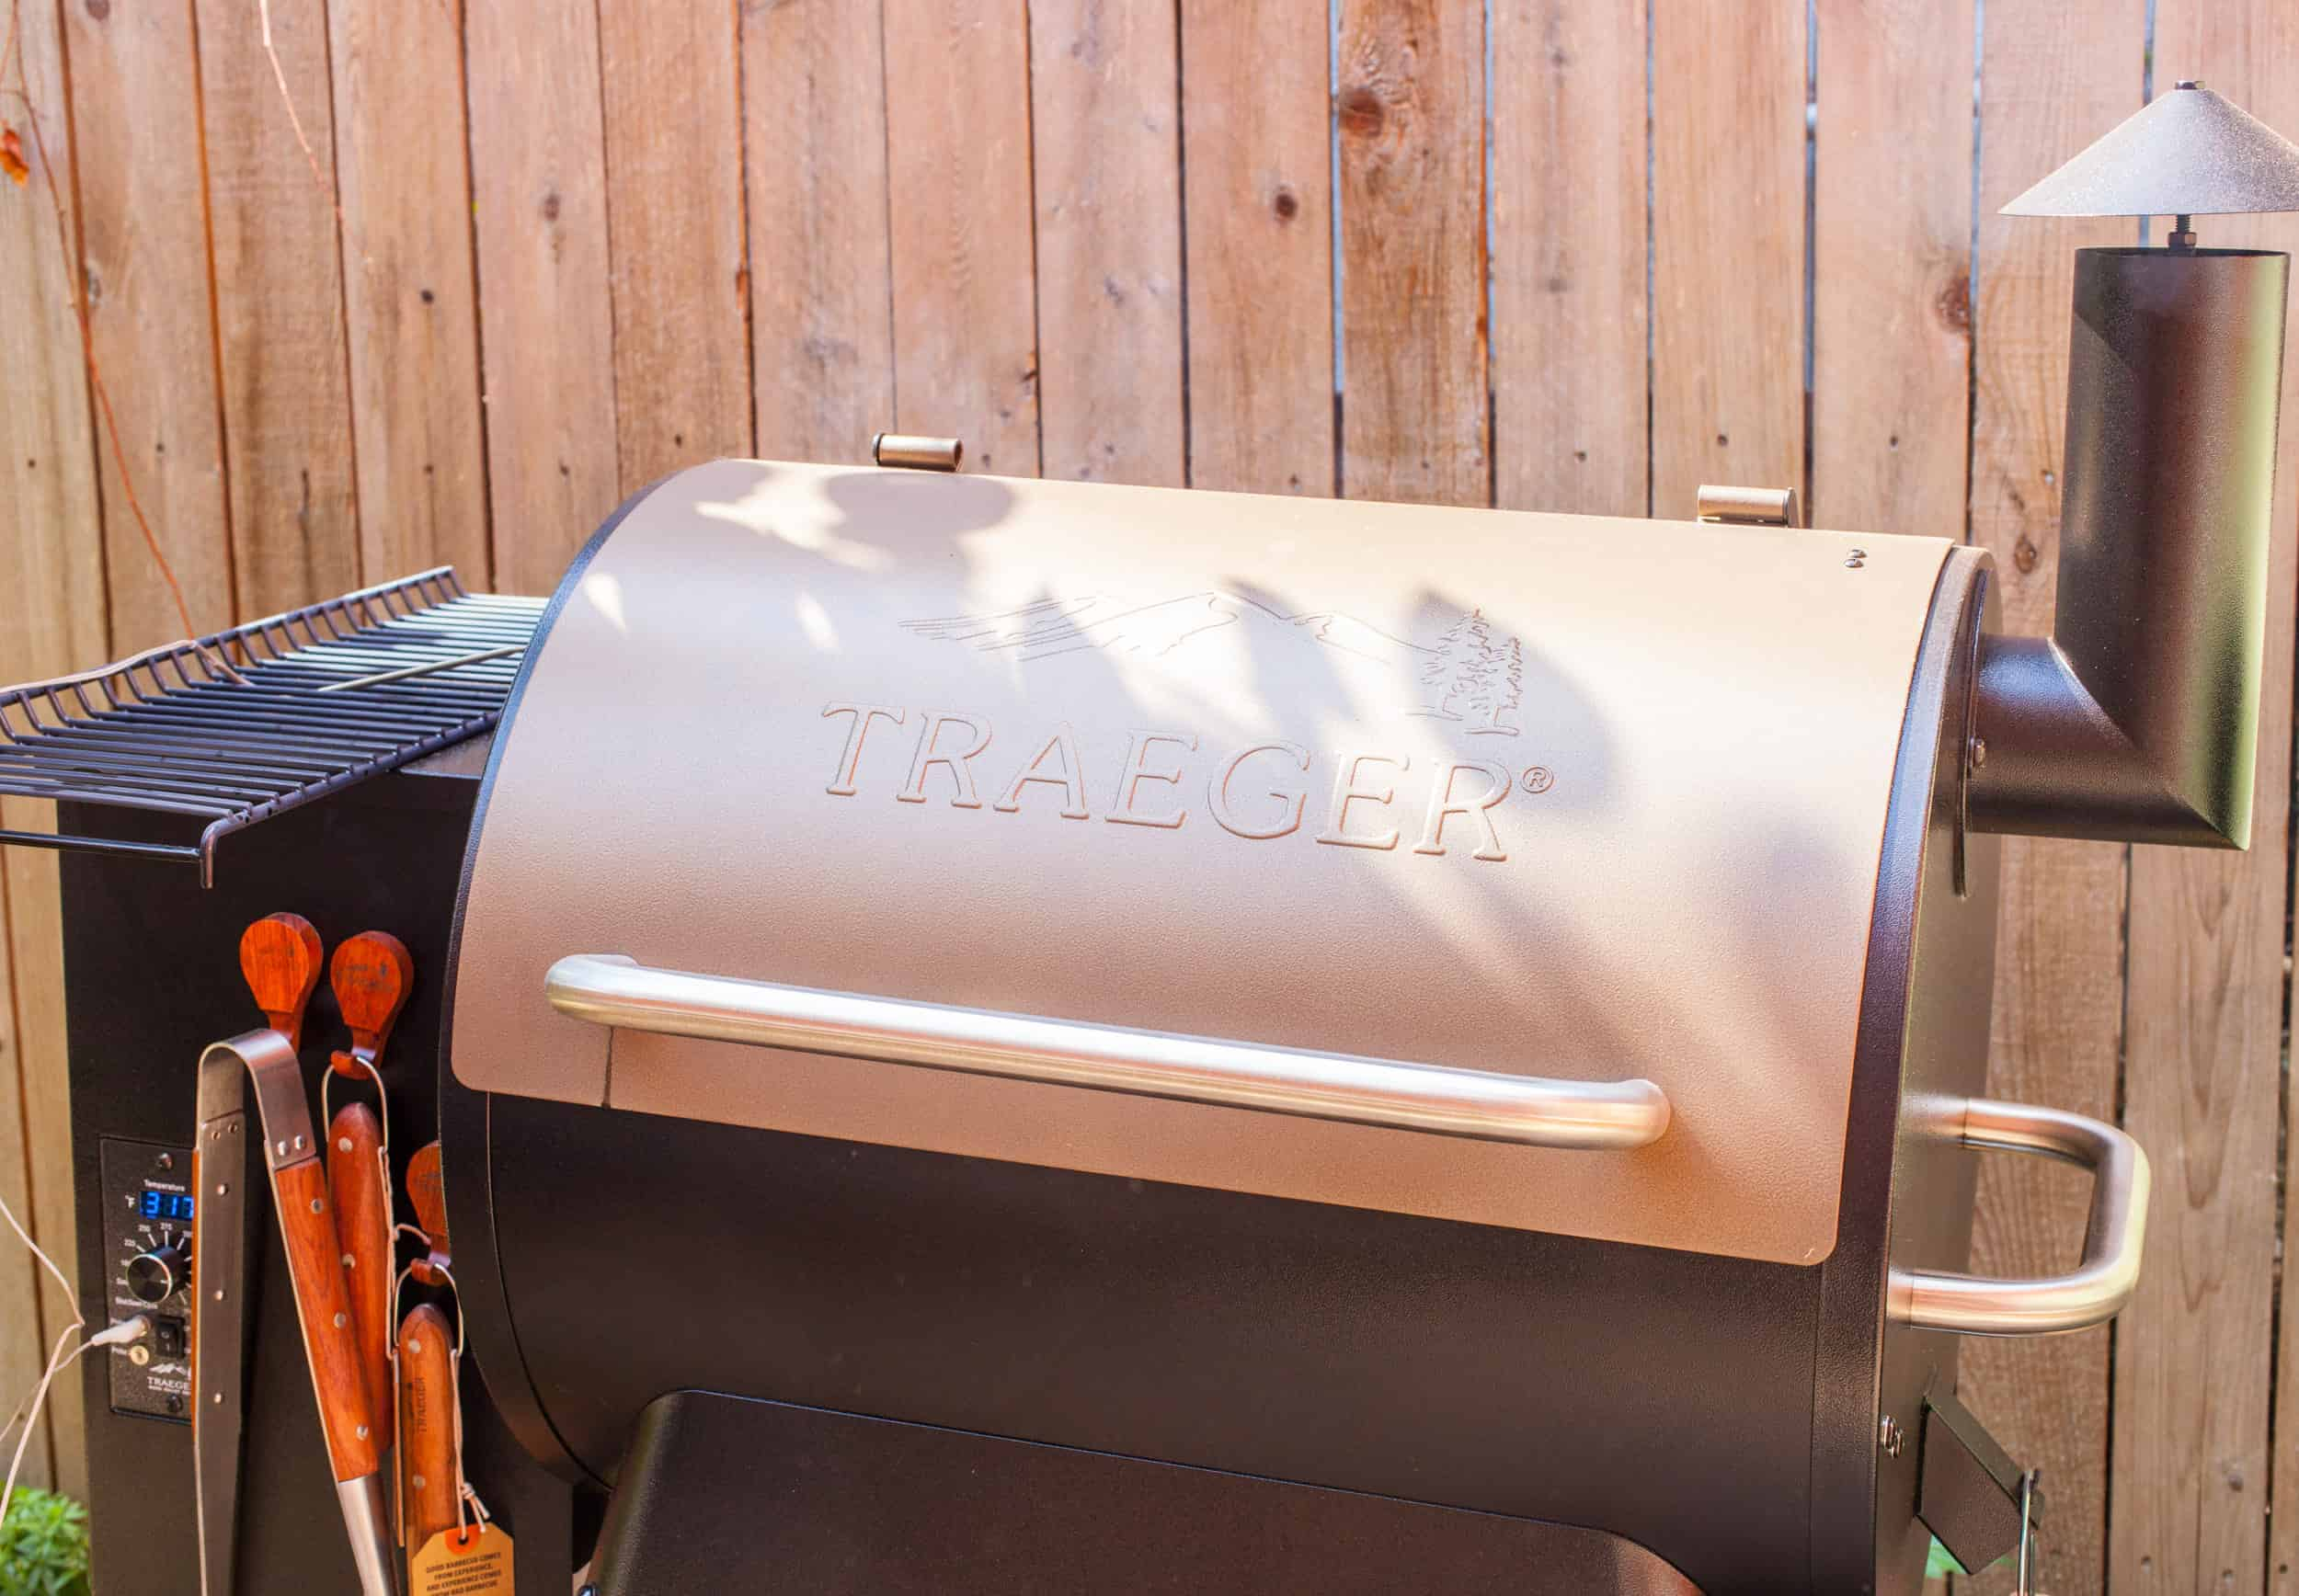 My Traeger Review and Trial - Pros and Cons ~ Macheesmo